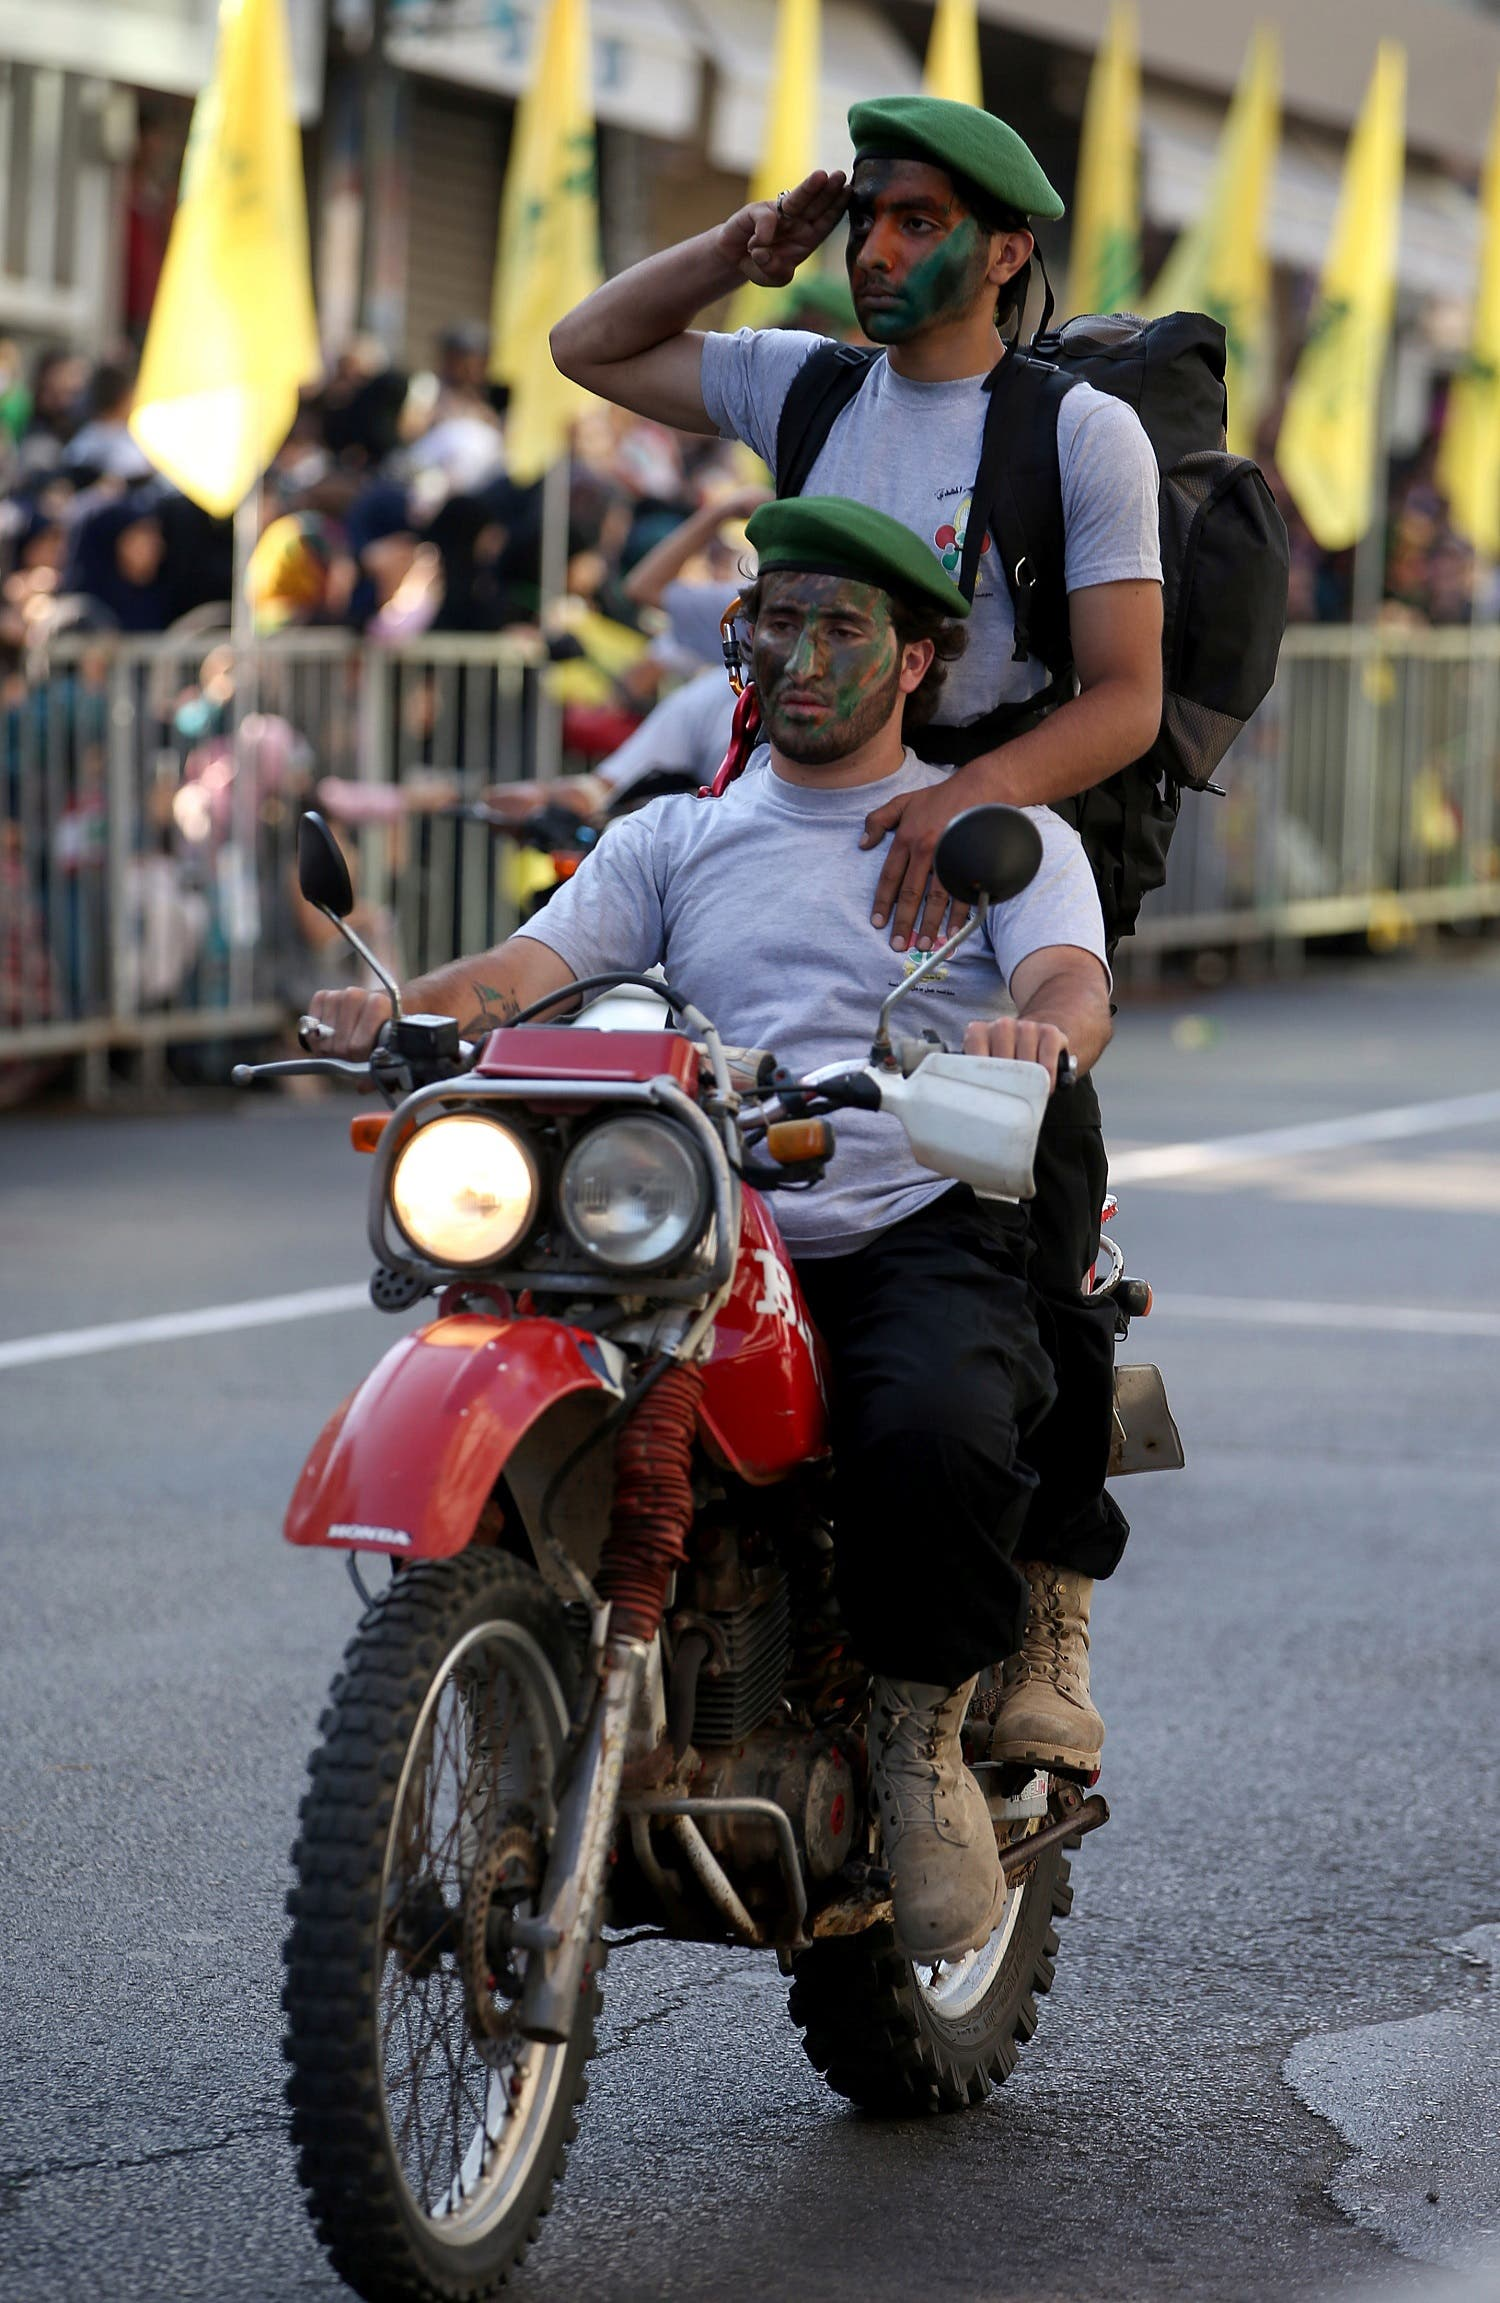 Hezbollah al-Mahdi scouts ride their motorcycle as they parade during an event for Jerusalem day or Al-Quds day, at the southern town of Nabatiyeh, Lebanon, Aug. 1, 2013. (AP)